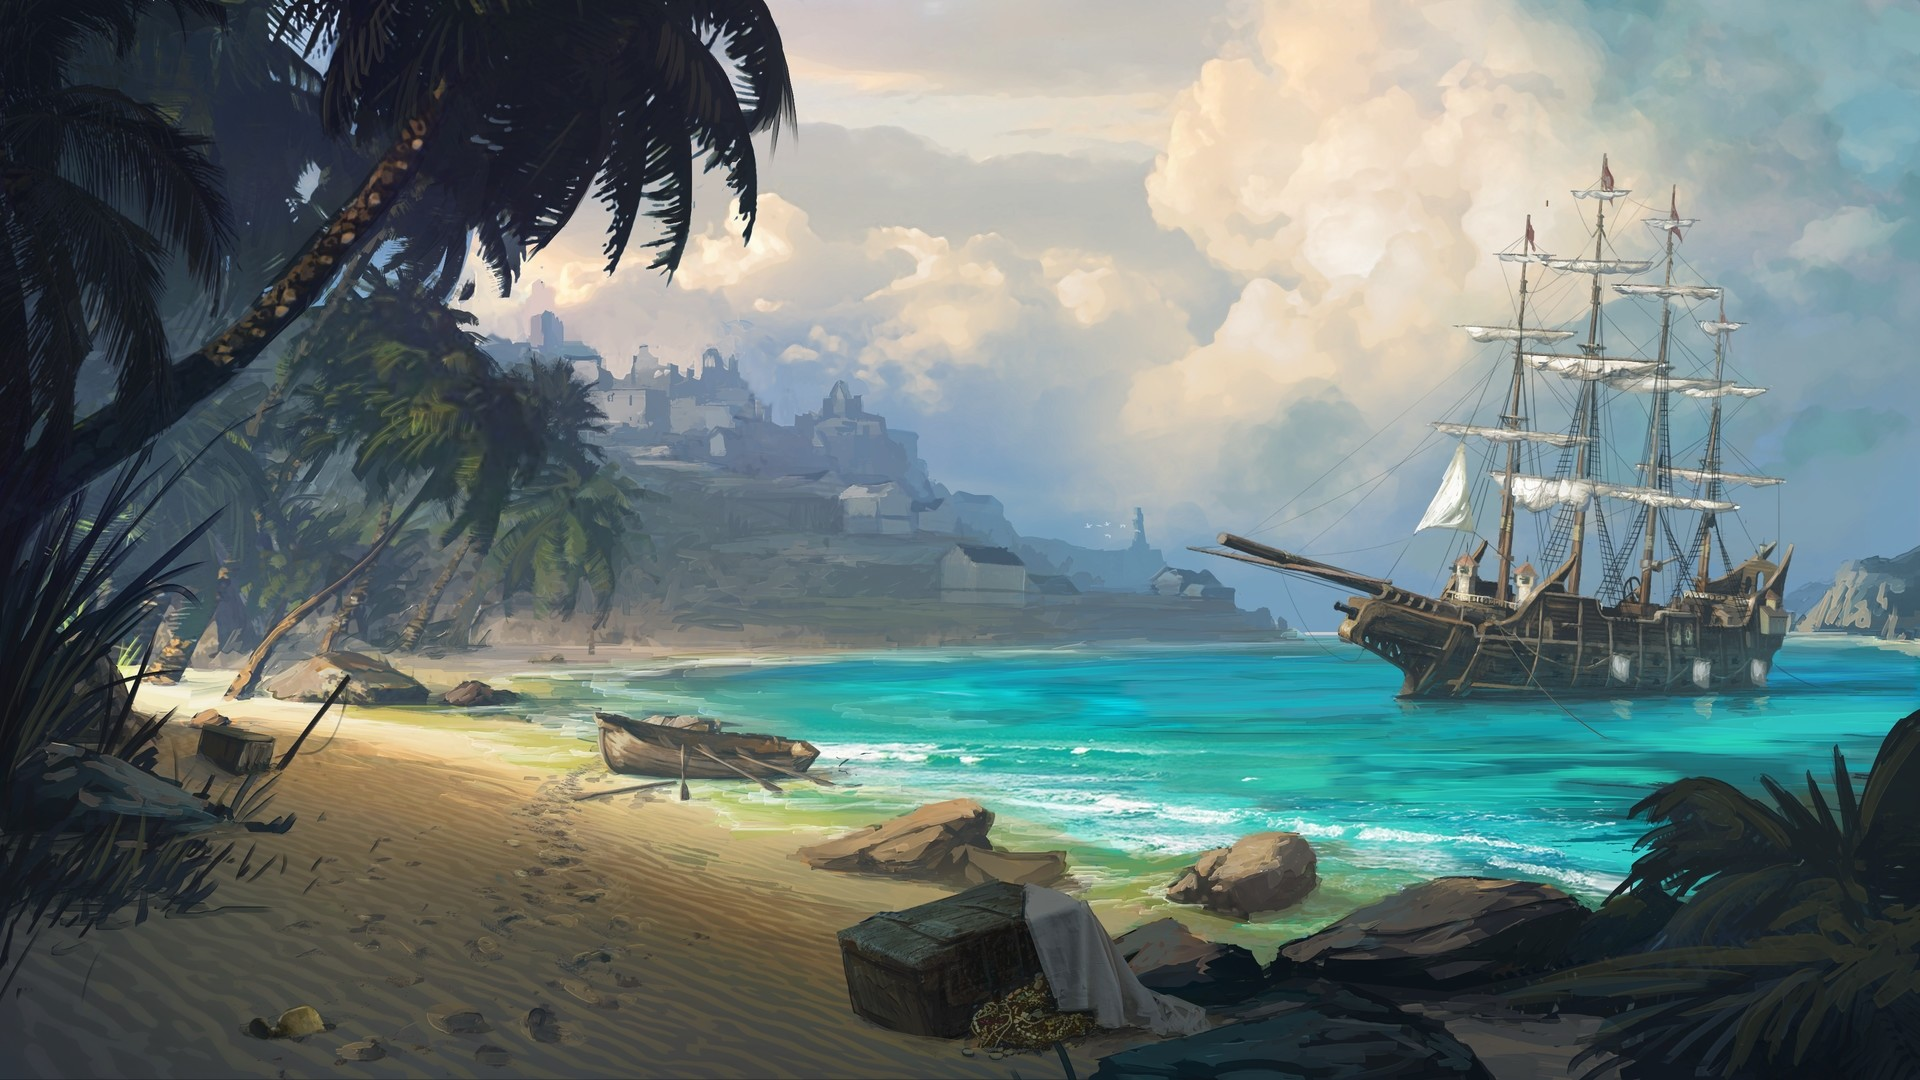 Pirate Wallpaper theme